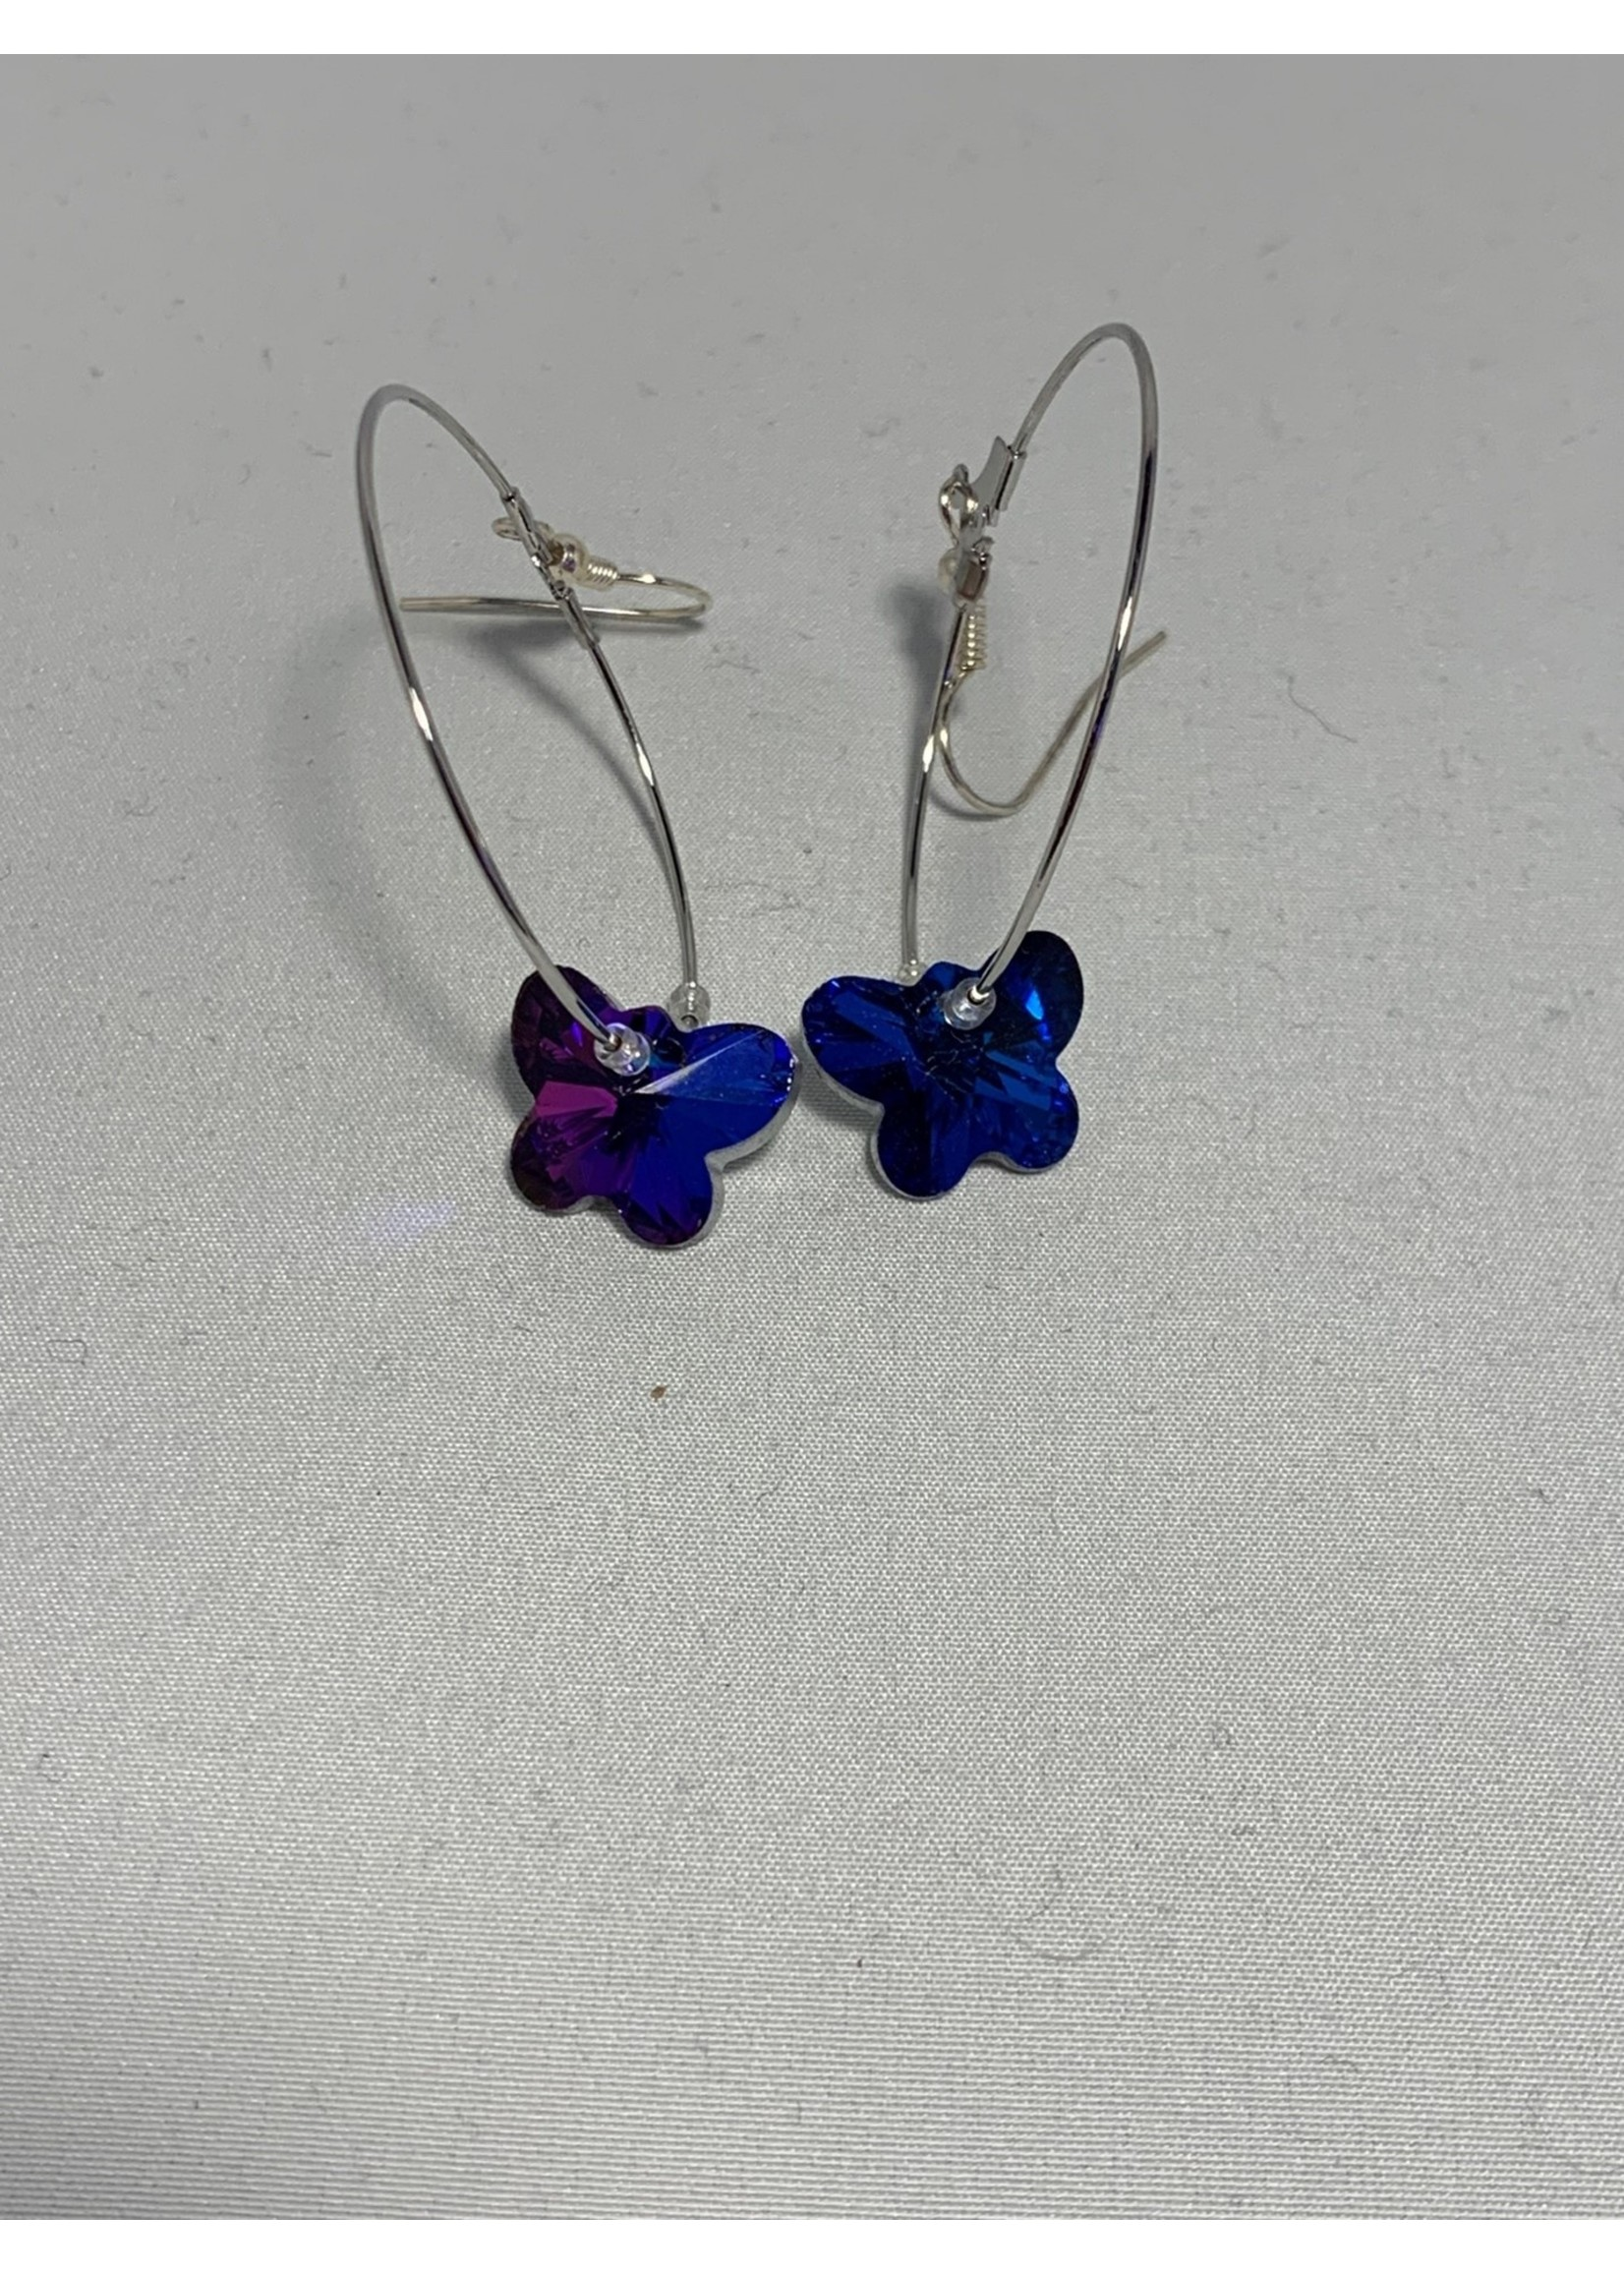 Silver Hoops with Blue & Purple Crystal Butterflies, Silver Lined Crystal Beads